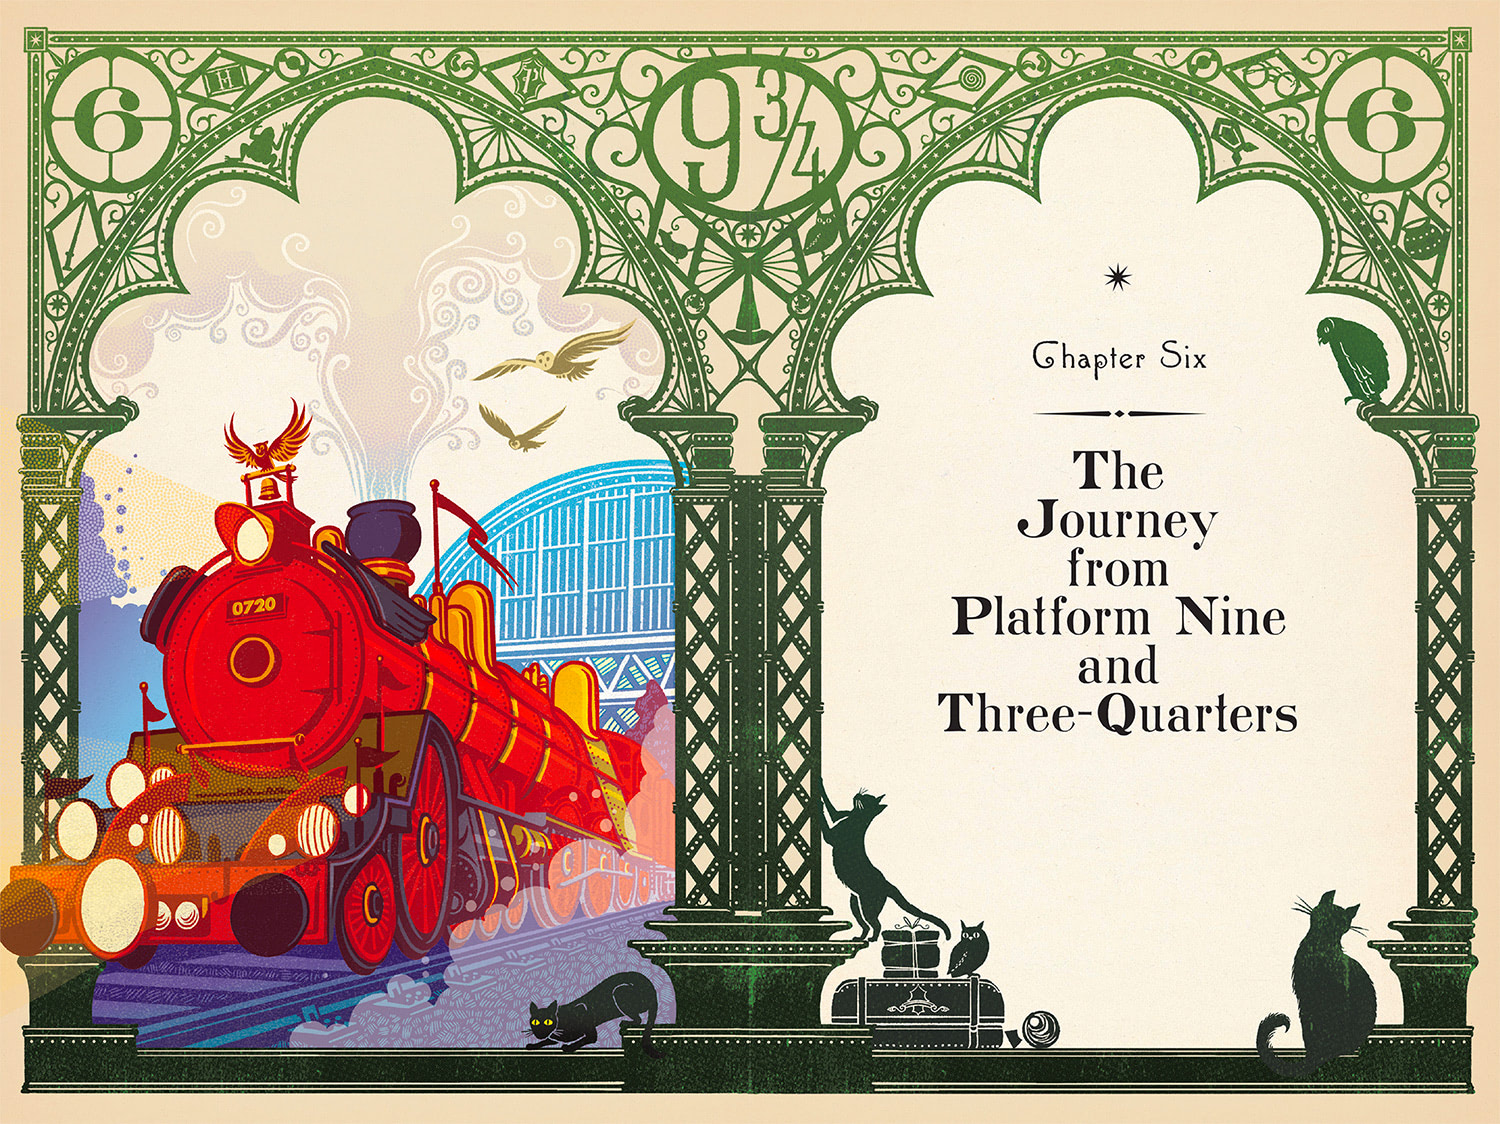 Hogwarts Express (MinaLima illustrated edition)